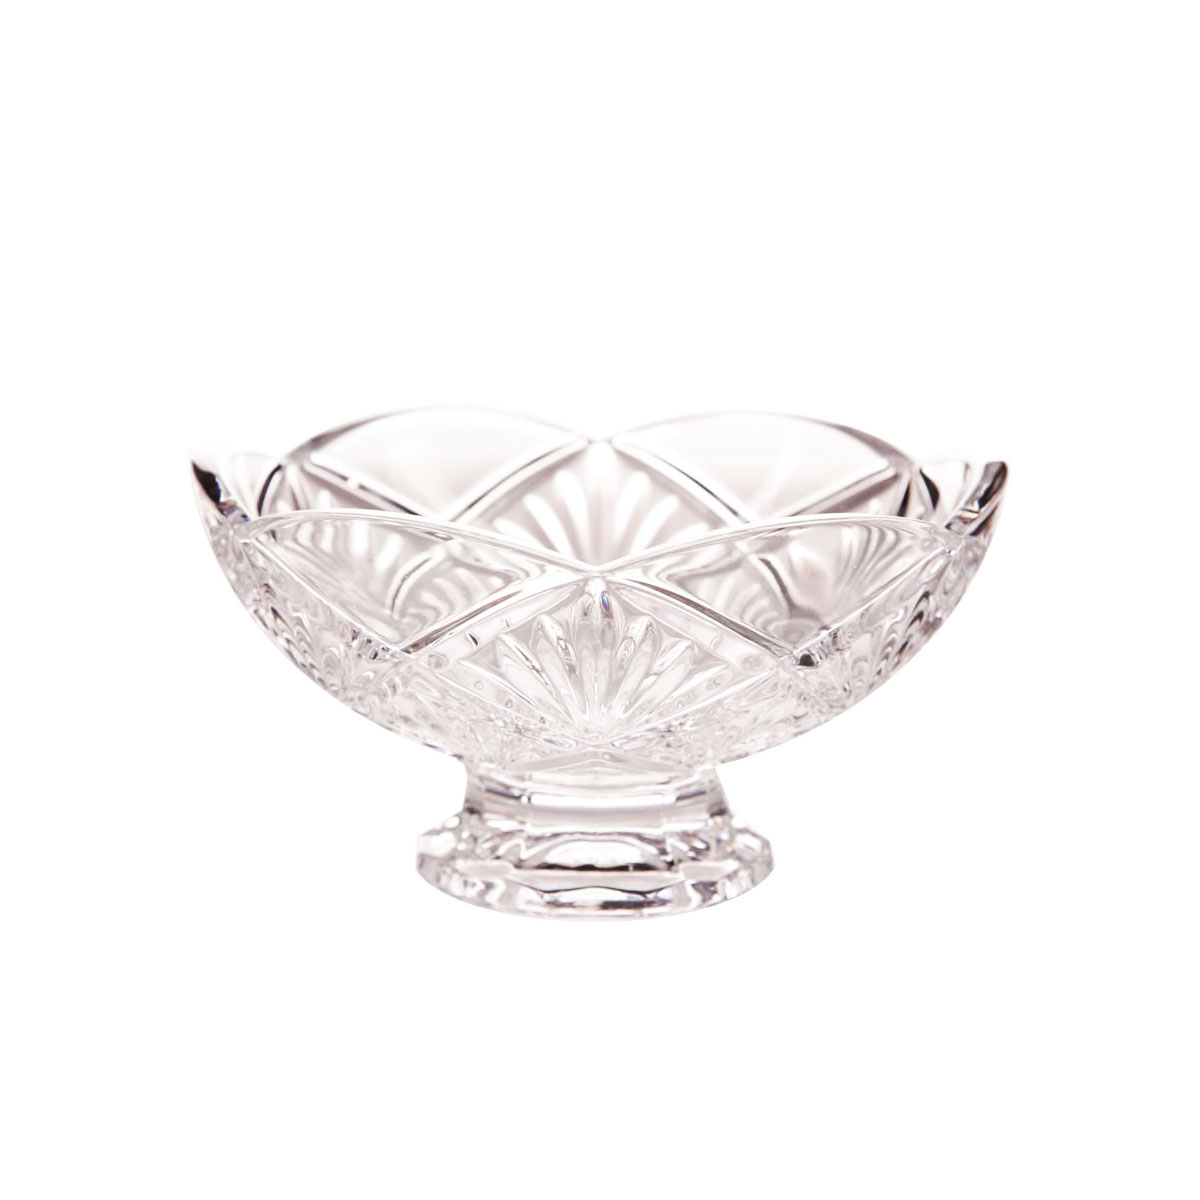 "Waterford Crystal Evie 6"" Footed Bowl"